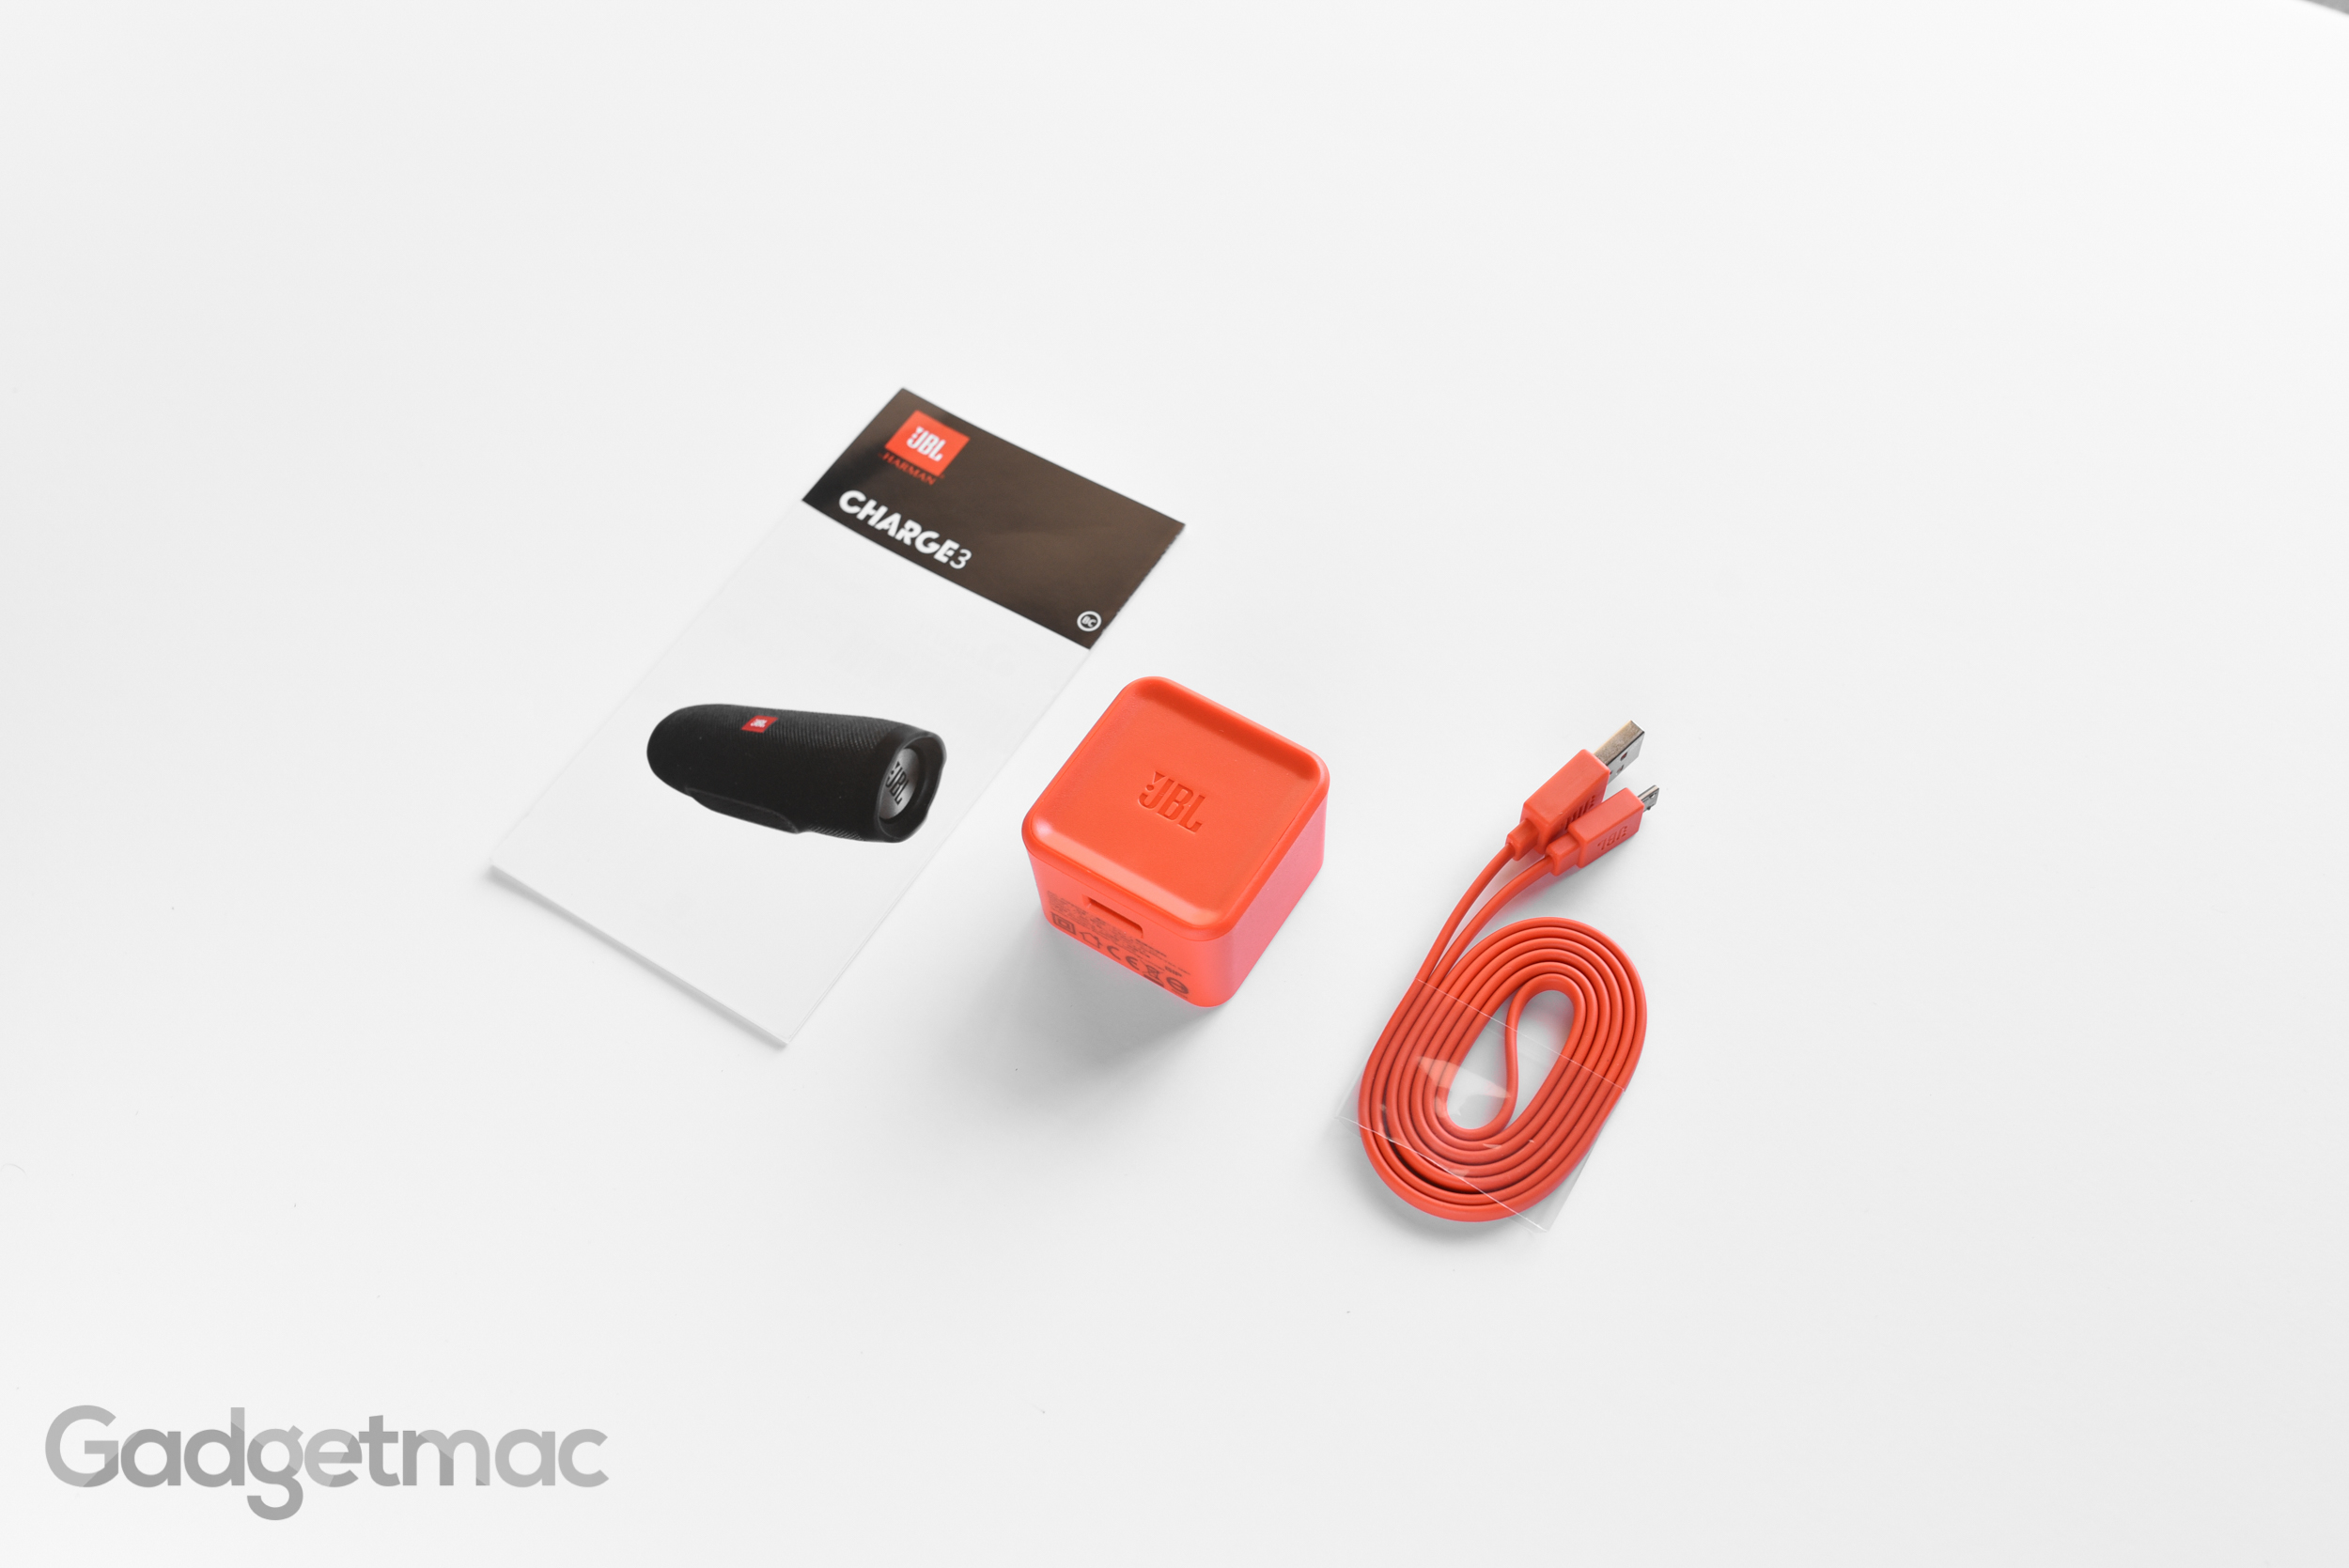 jbl-charge-3-included-accessories.jpg